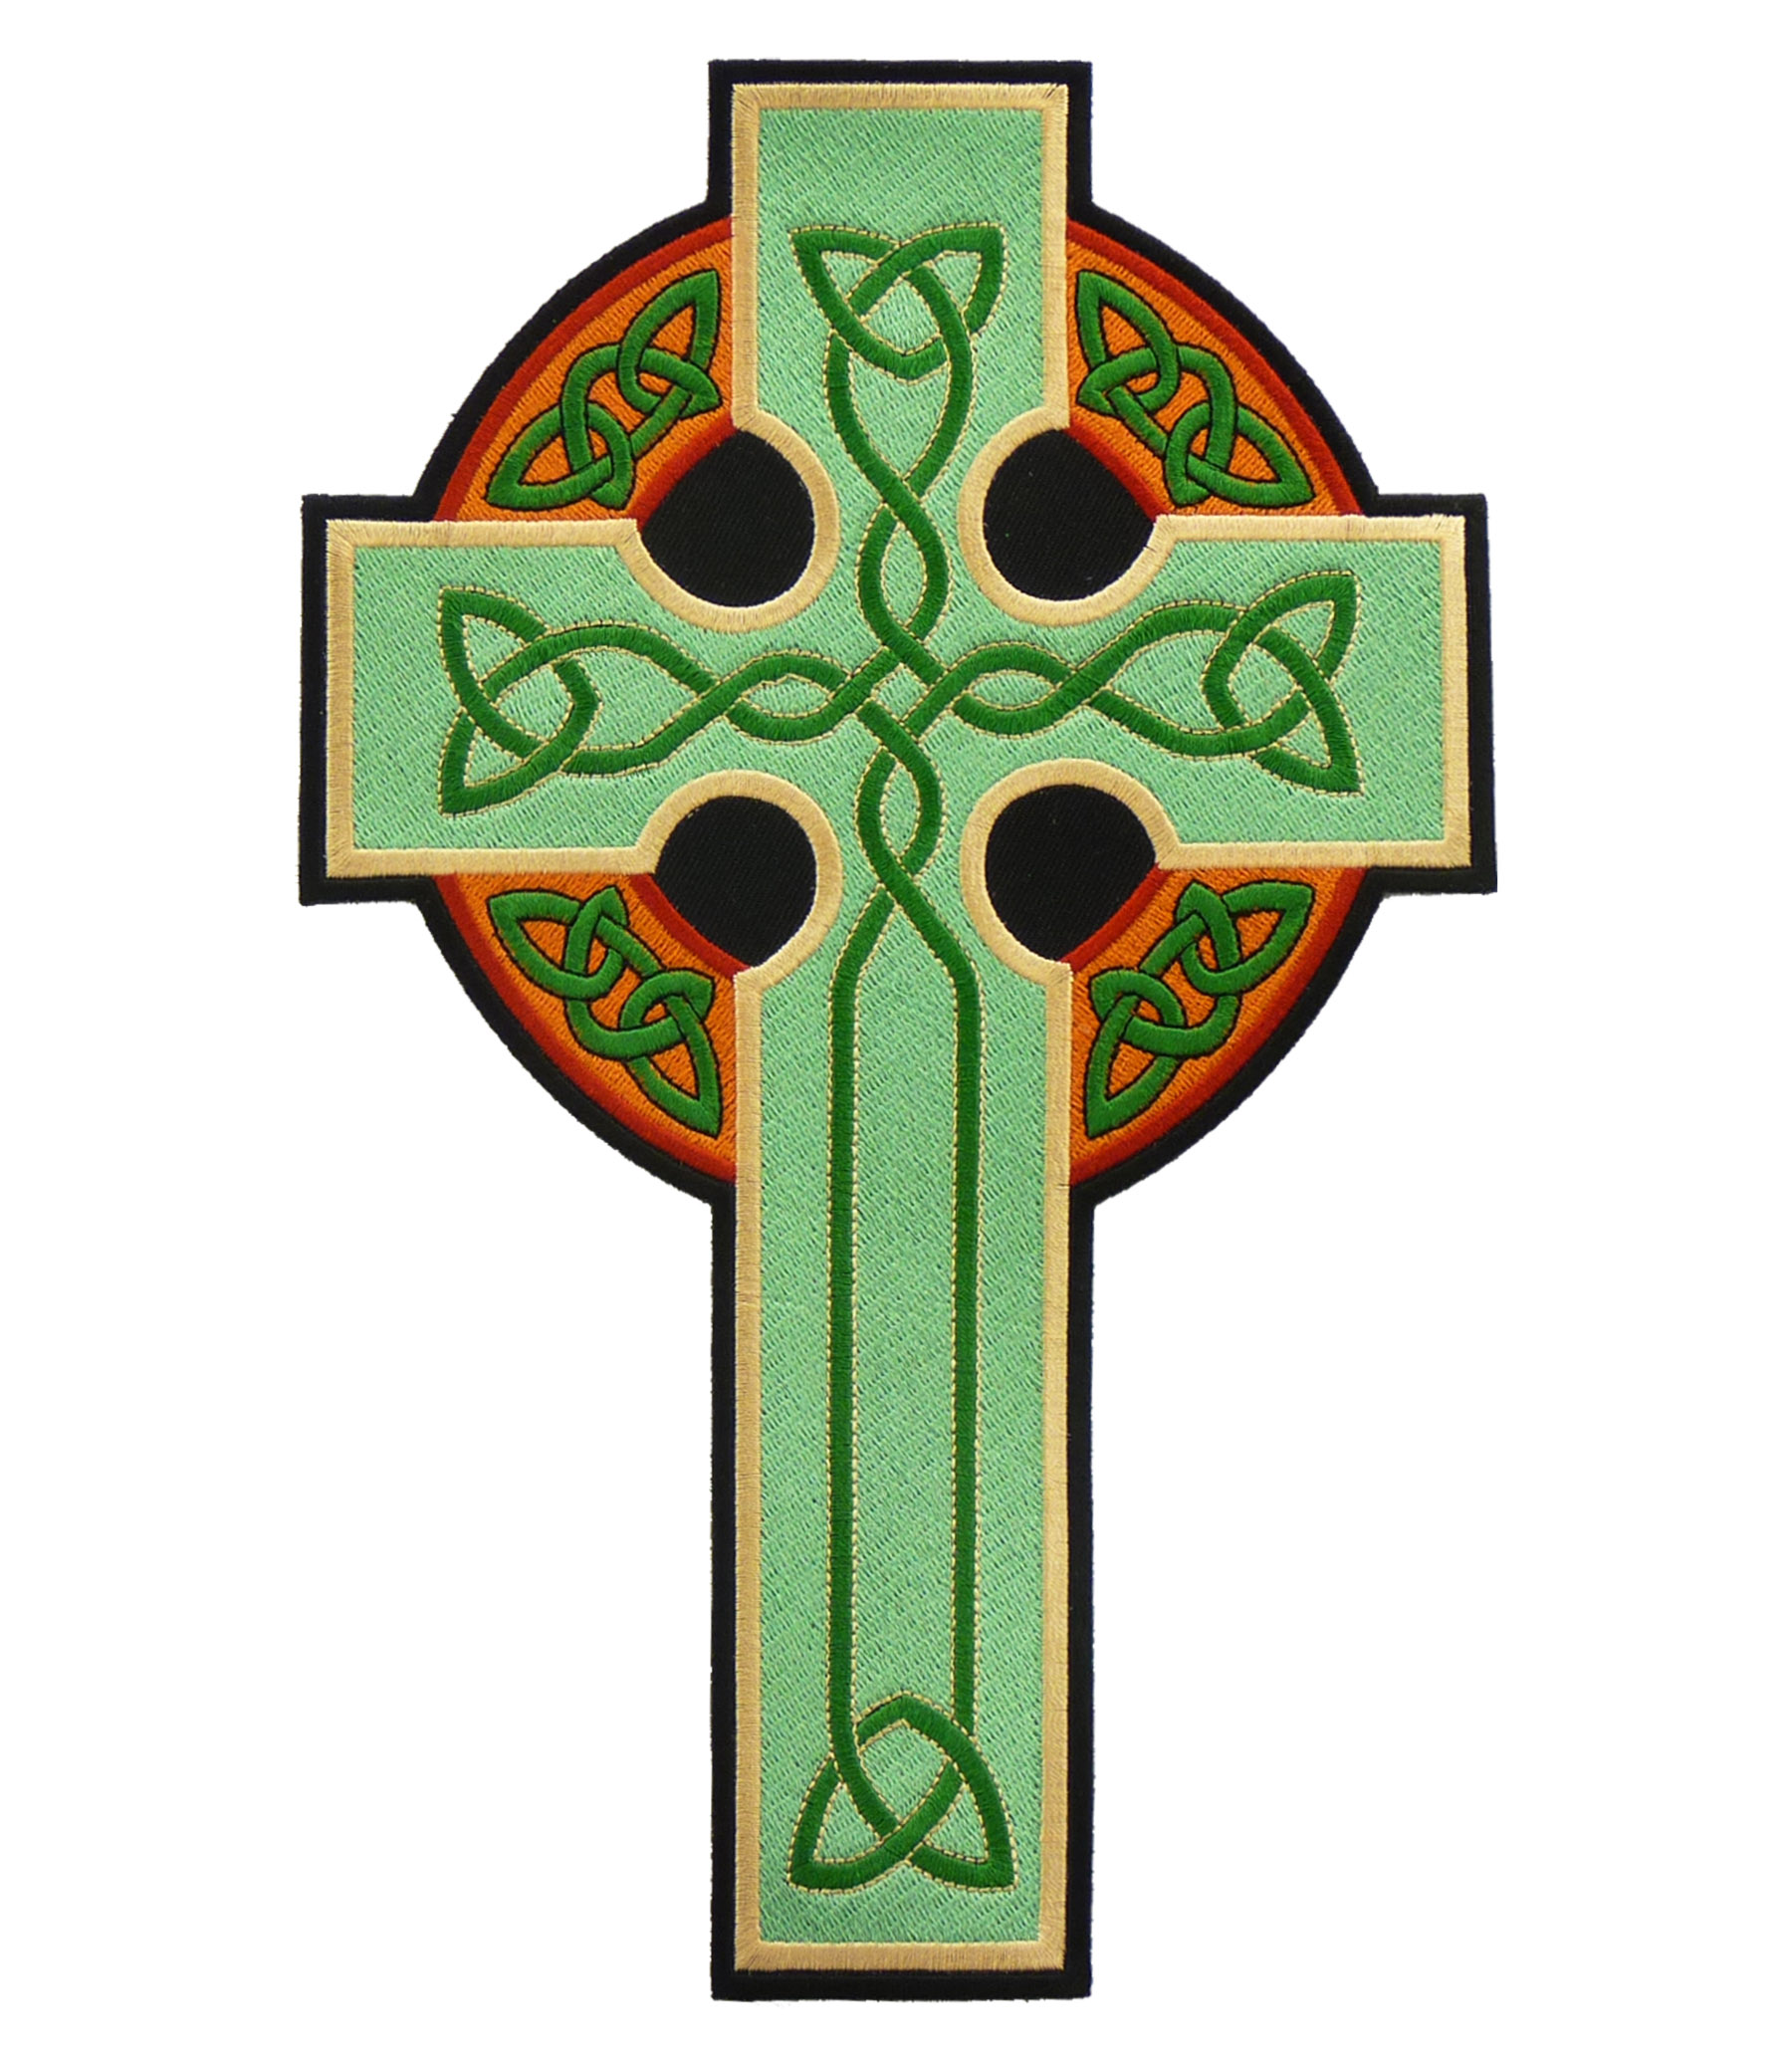 Green gold irish celtic cross patch irish patches voltagebd Images